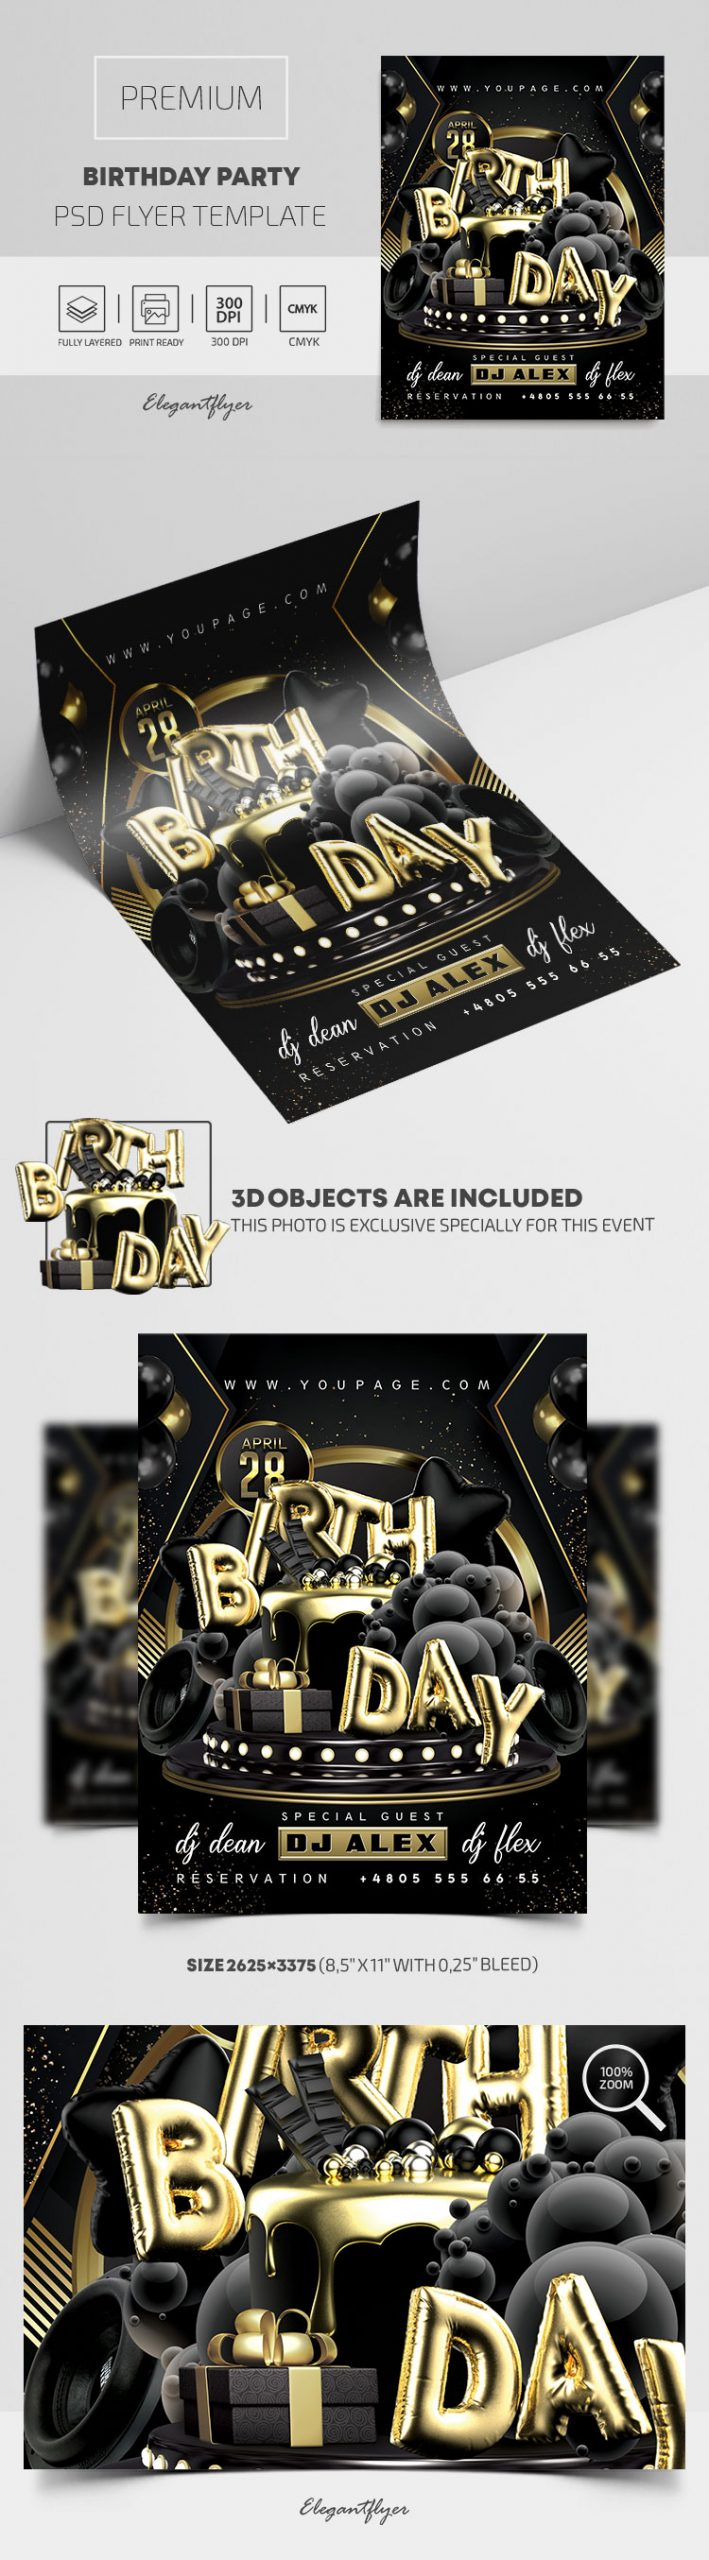 Birthday Party – Premium PSD Flyer Template